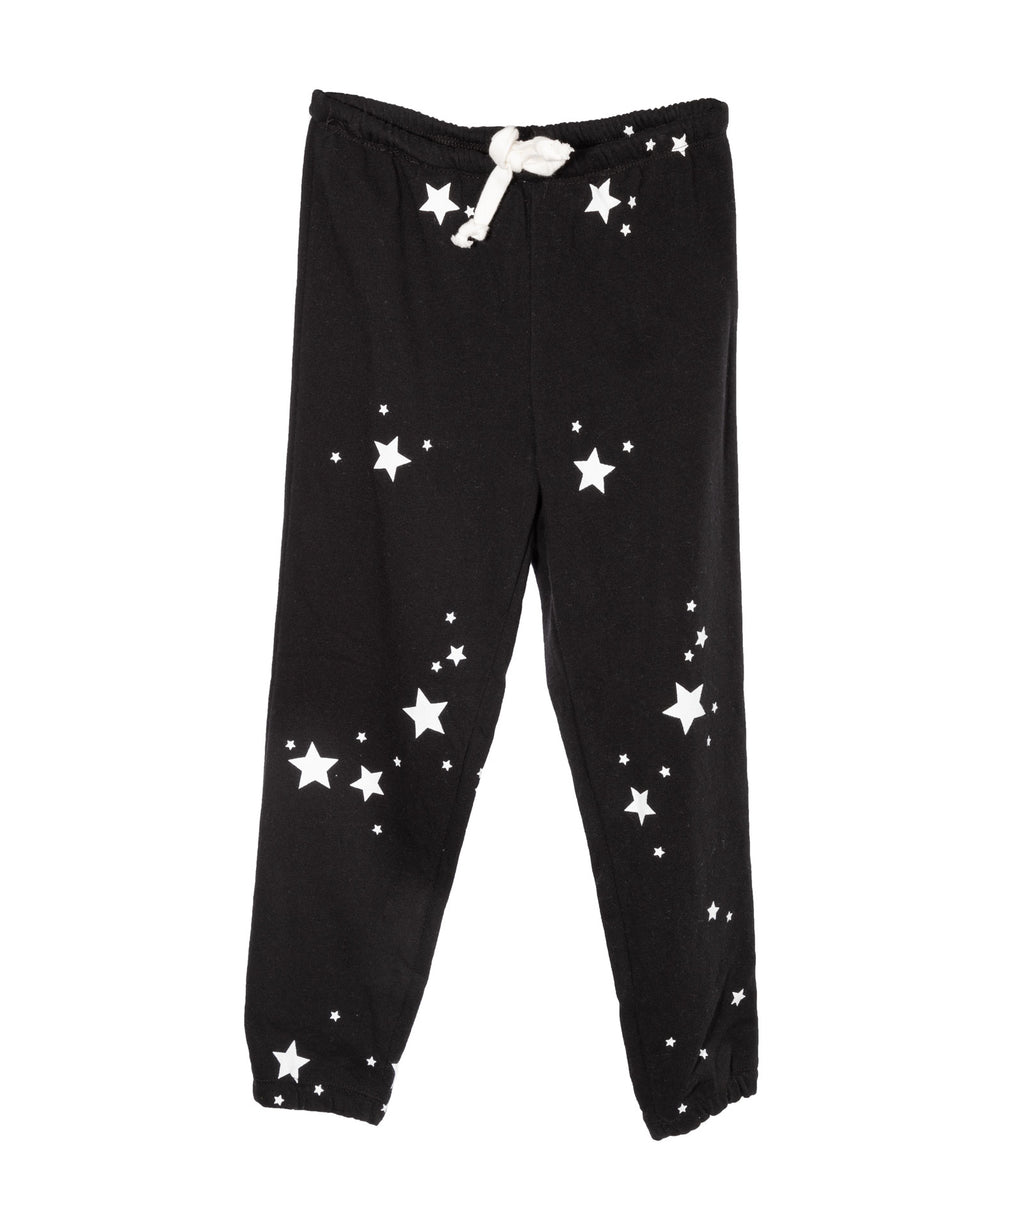 Katie J NYC Girls Faith Black Star Sweatpants